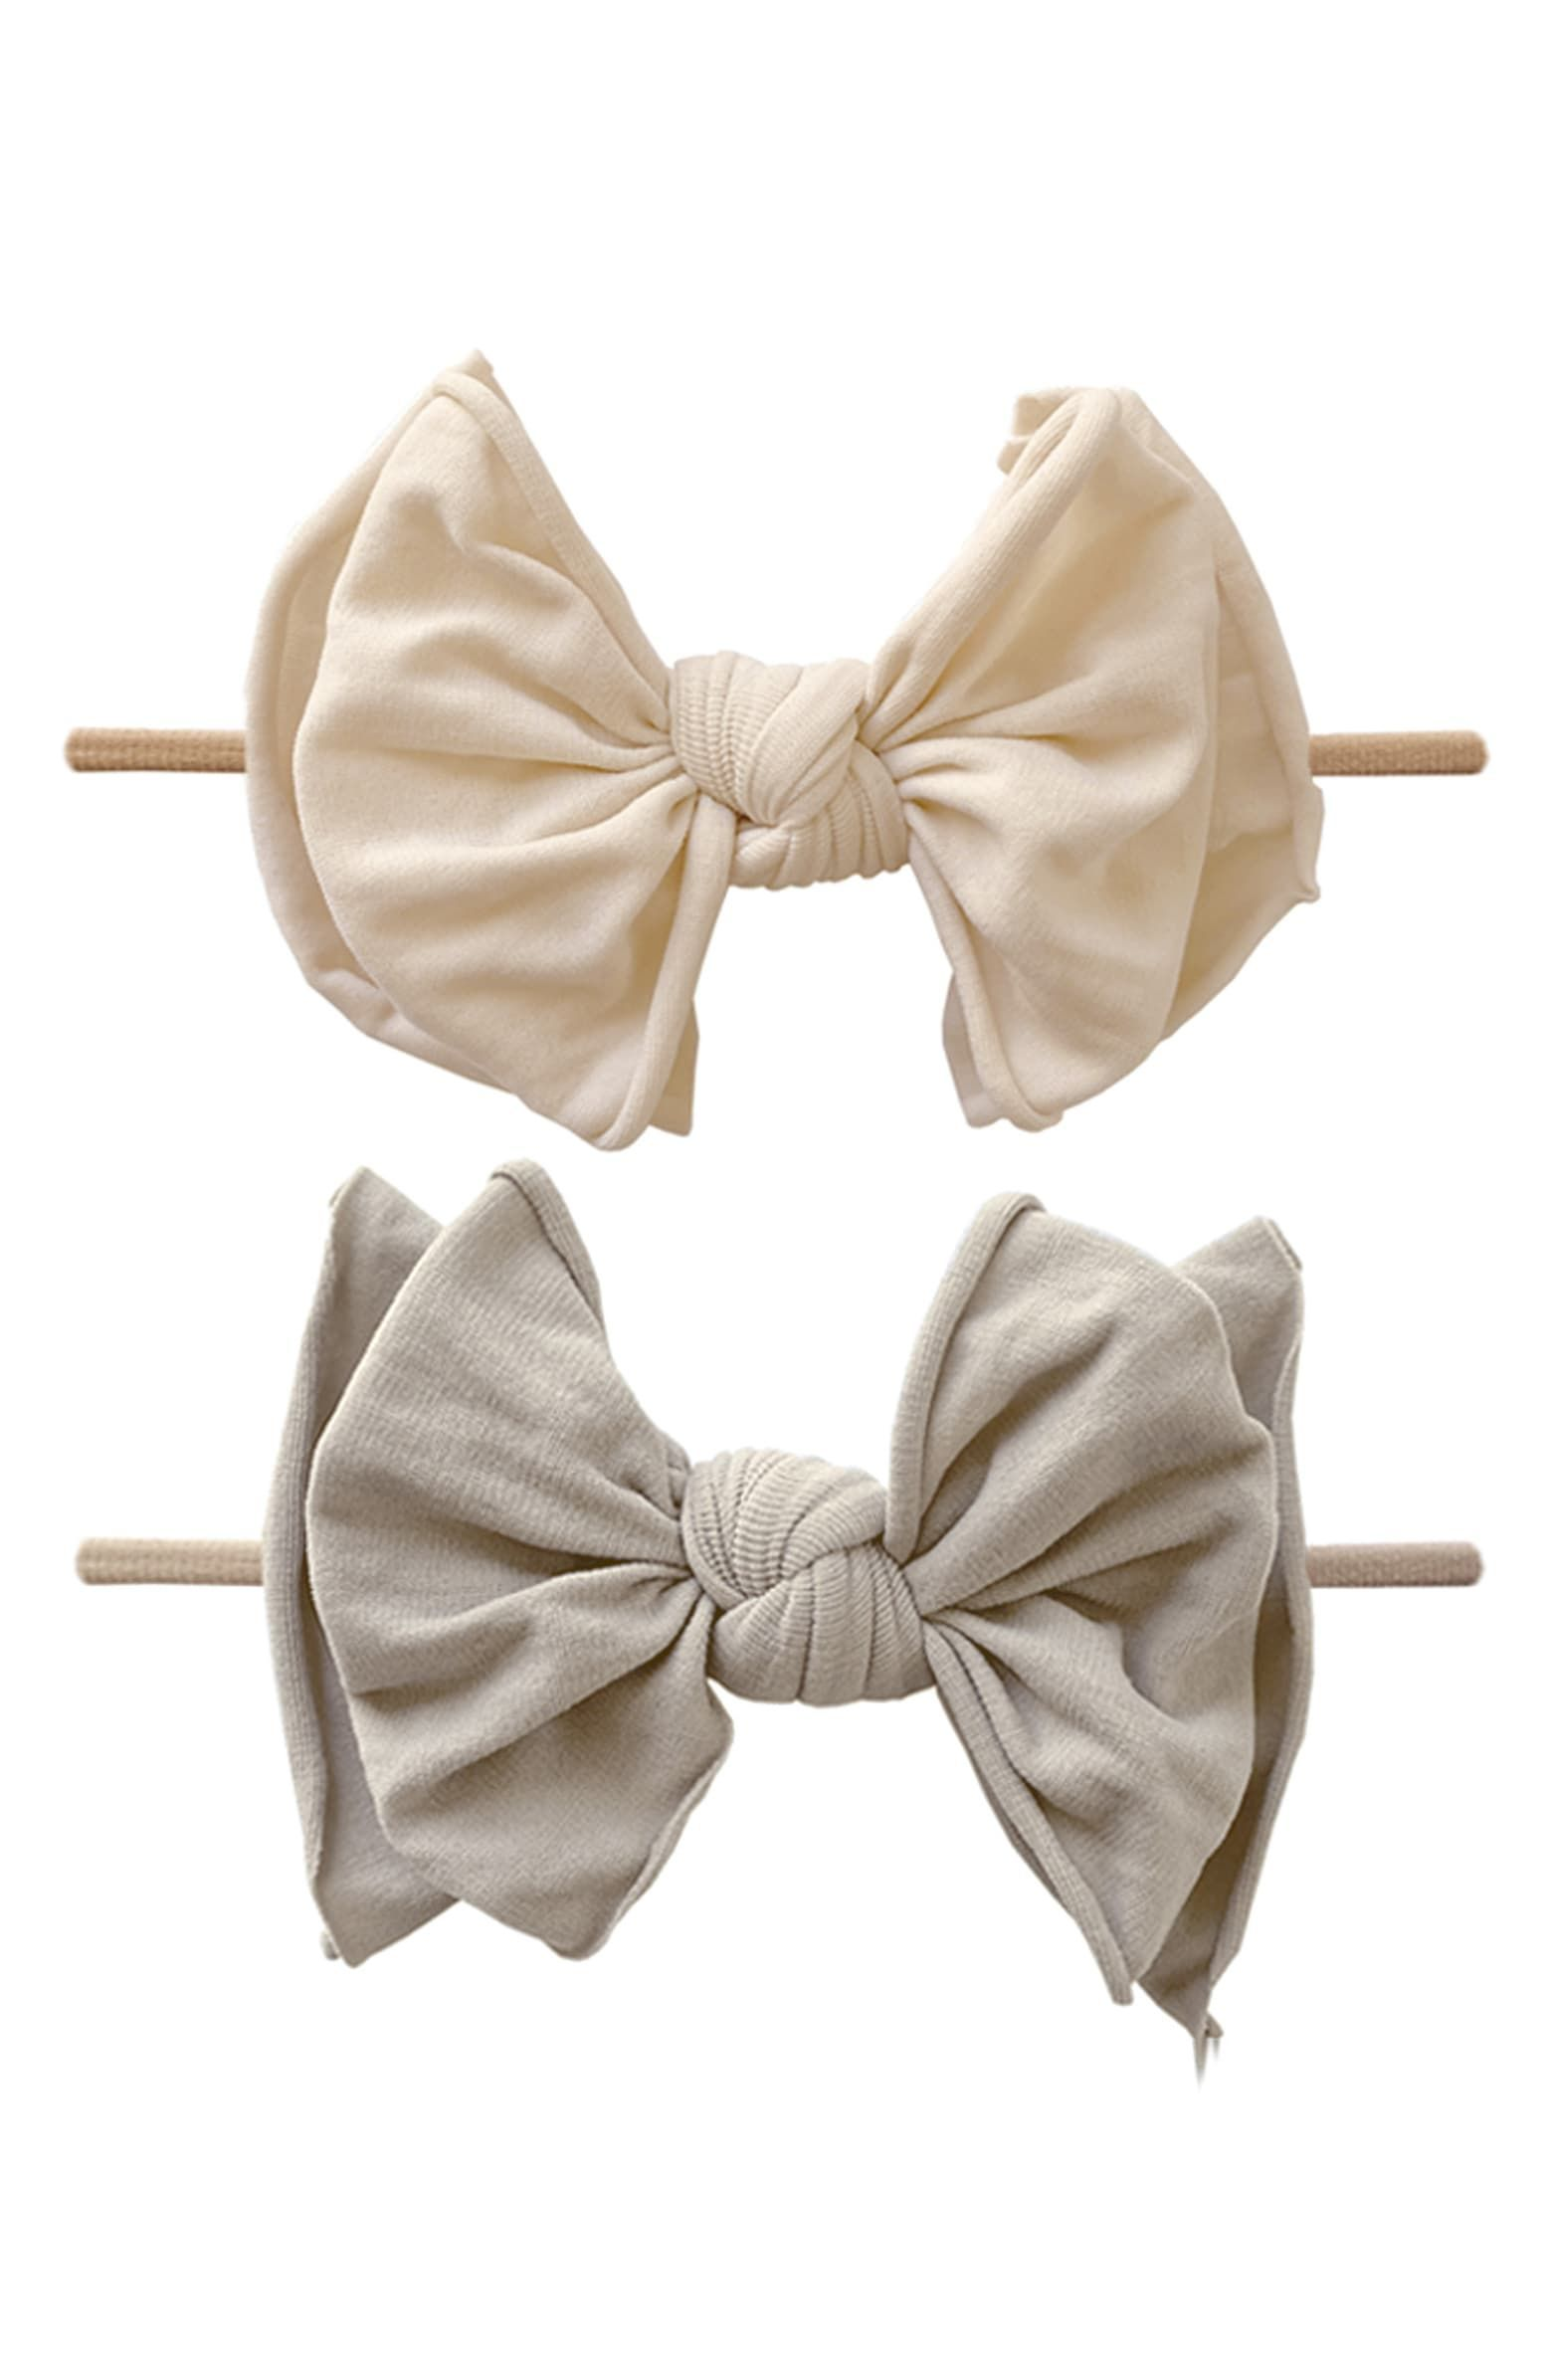 Nordstrom Anniversary Sale 2020 My Top Picks The Diy Playbook In 2020 Baby Bling Bows Baby Bling Nordstrom Anniversary Sale